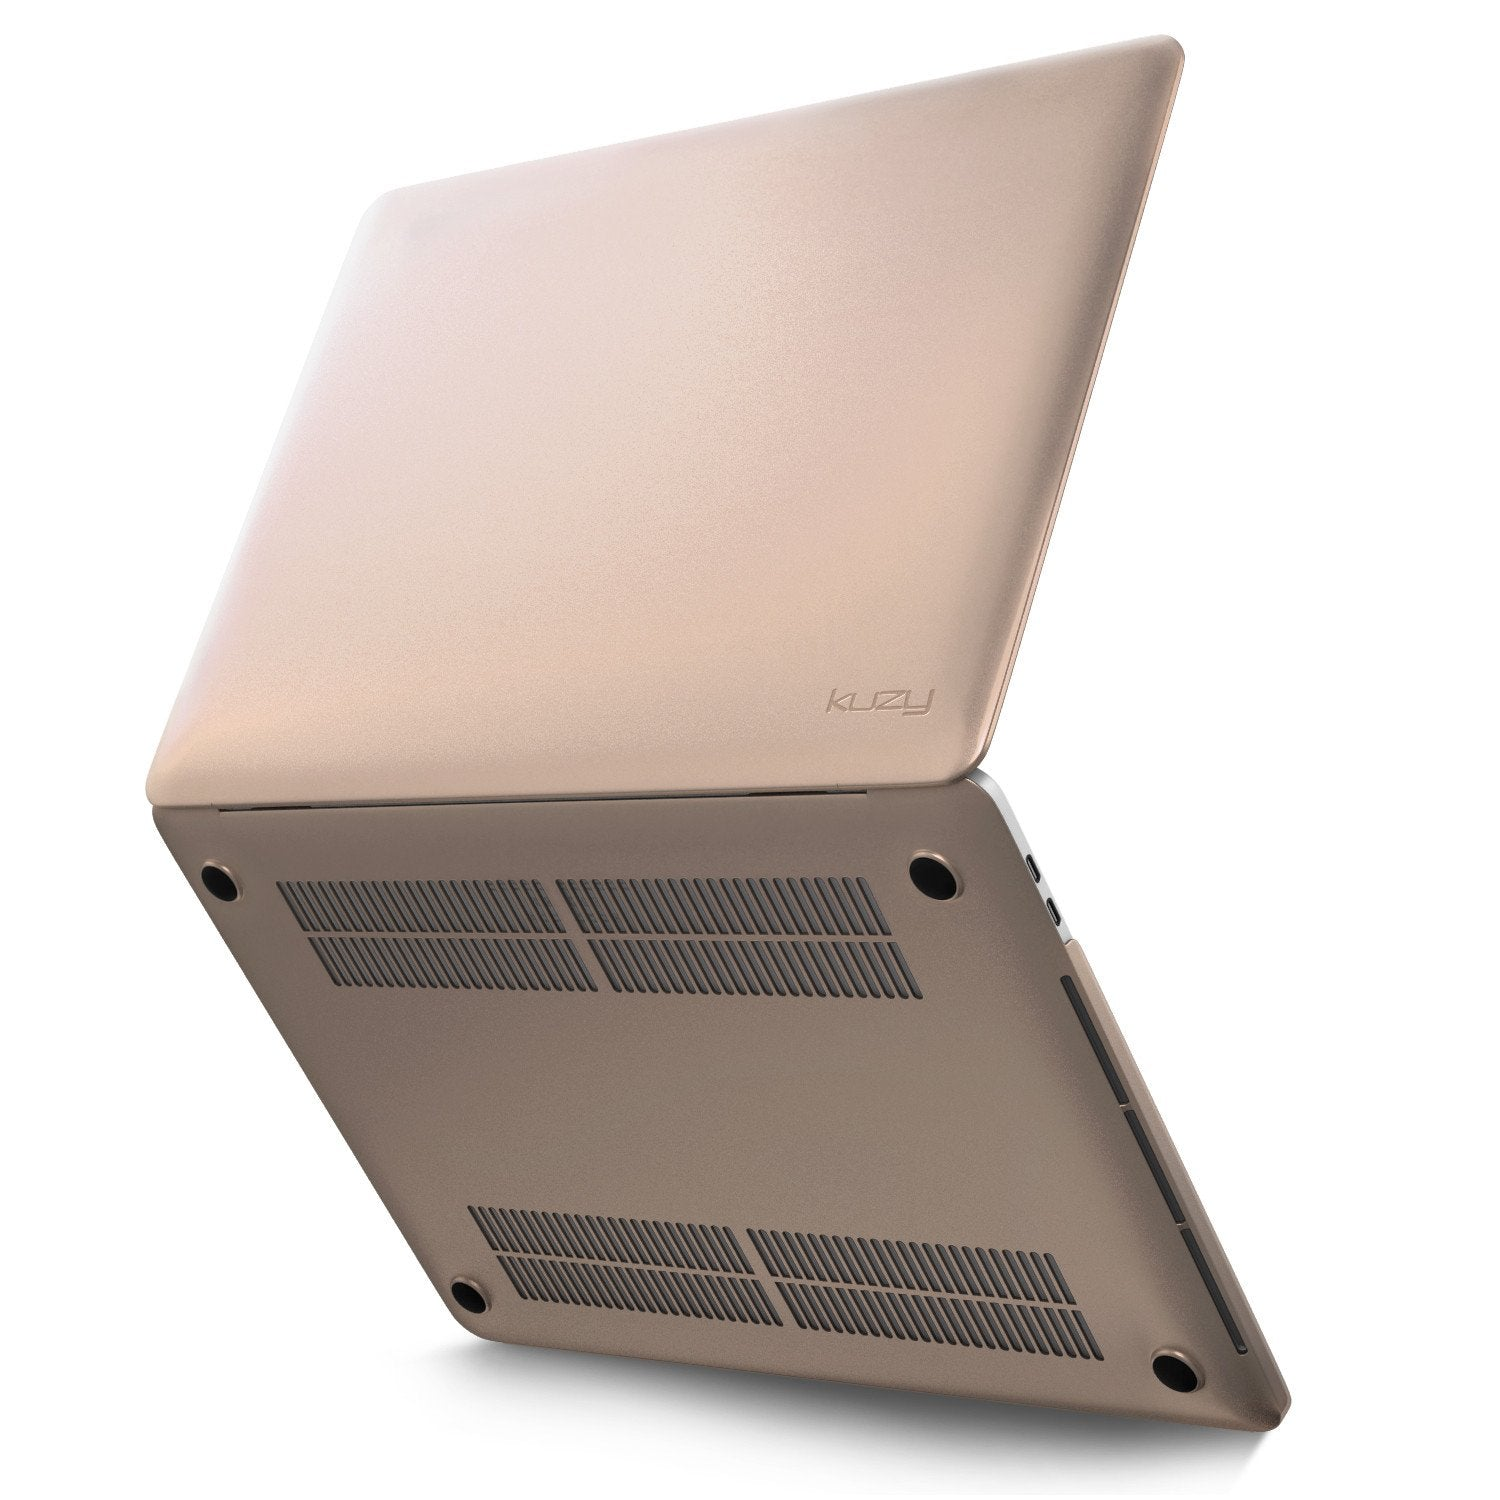 promo code c5eed 790a4 Gold Matte Case for MacBook Pro 13